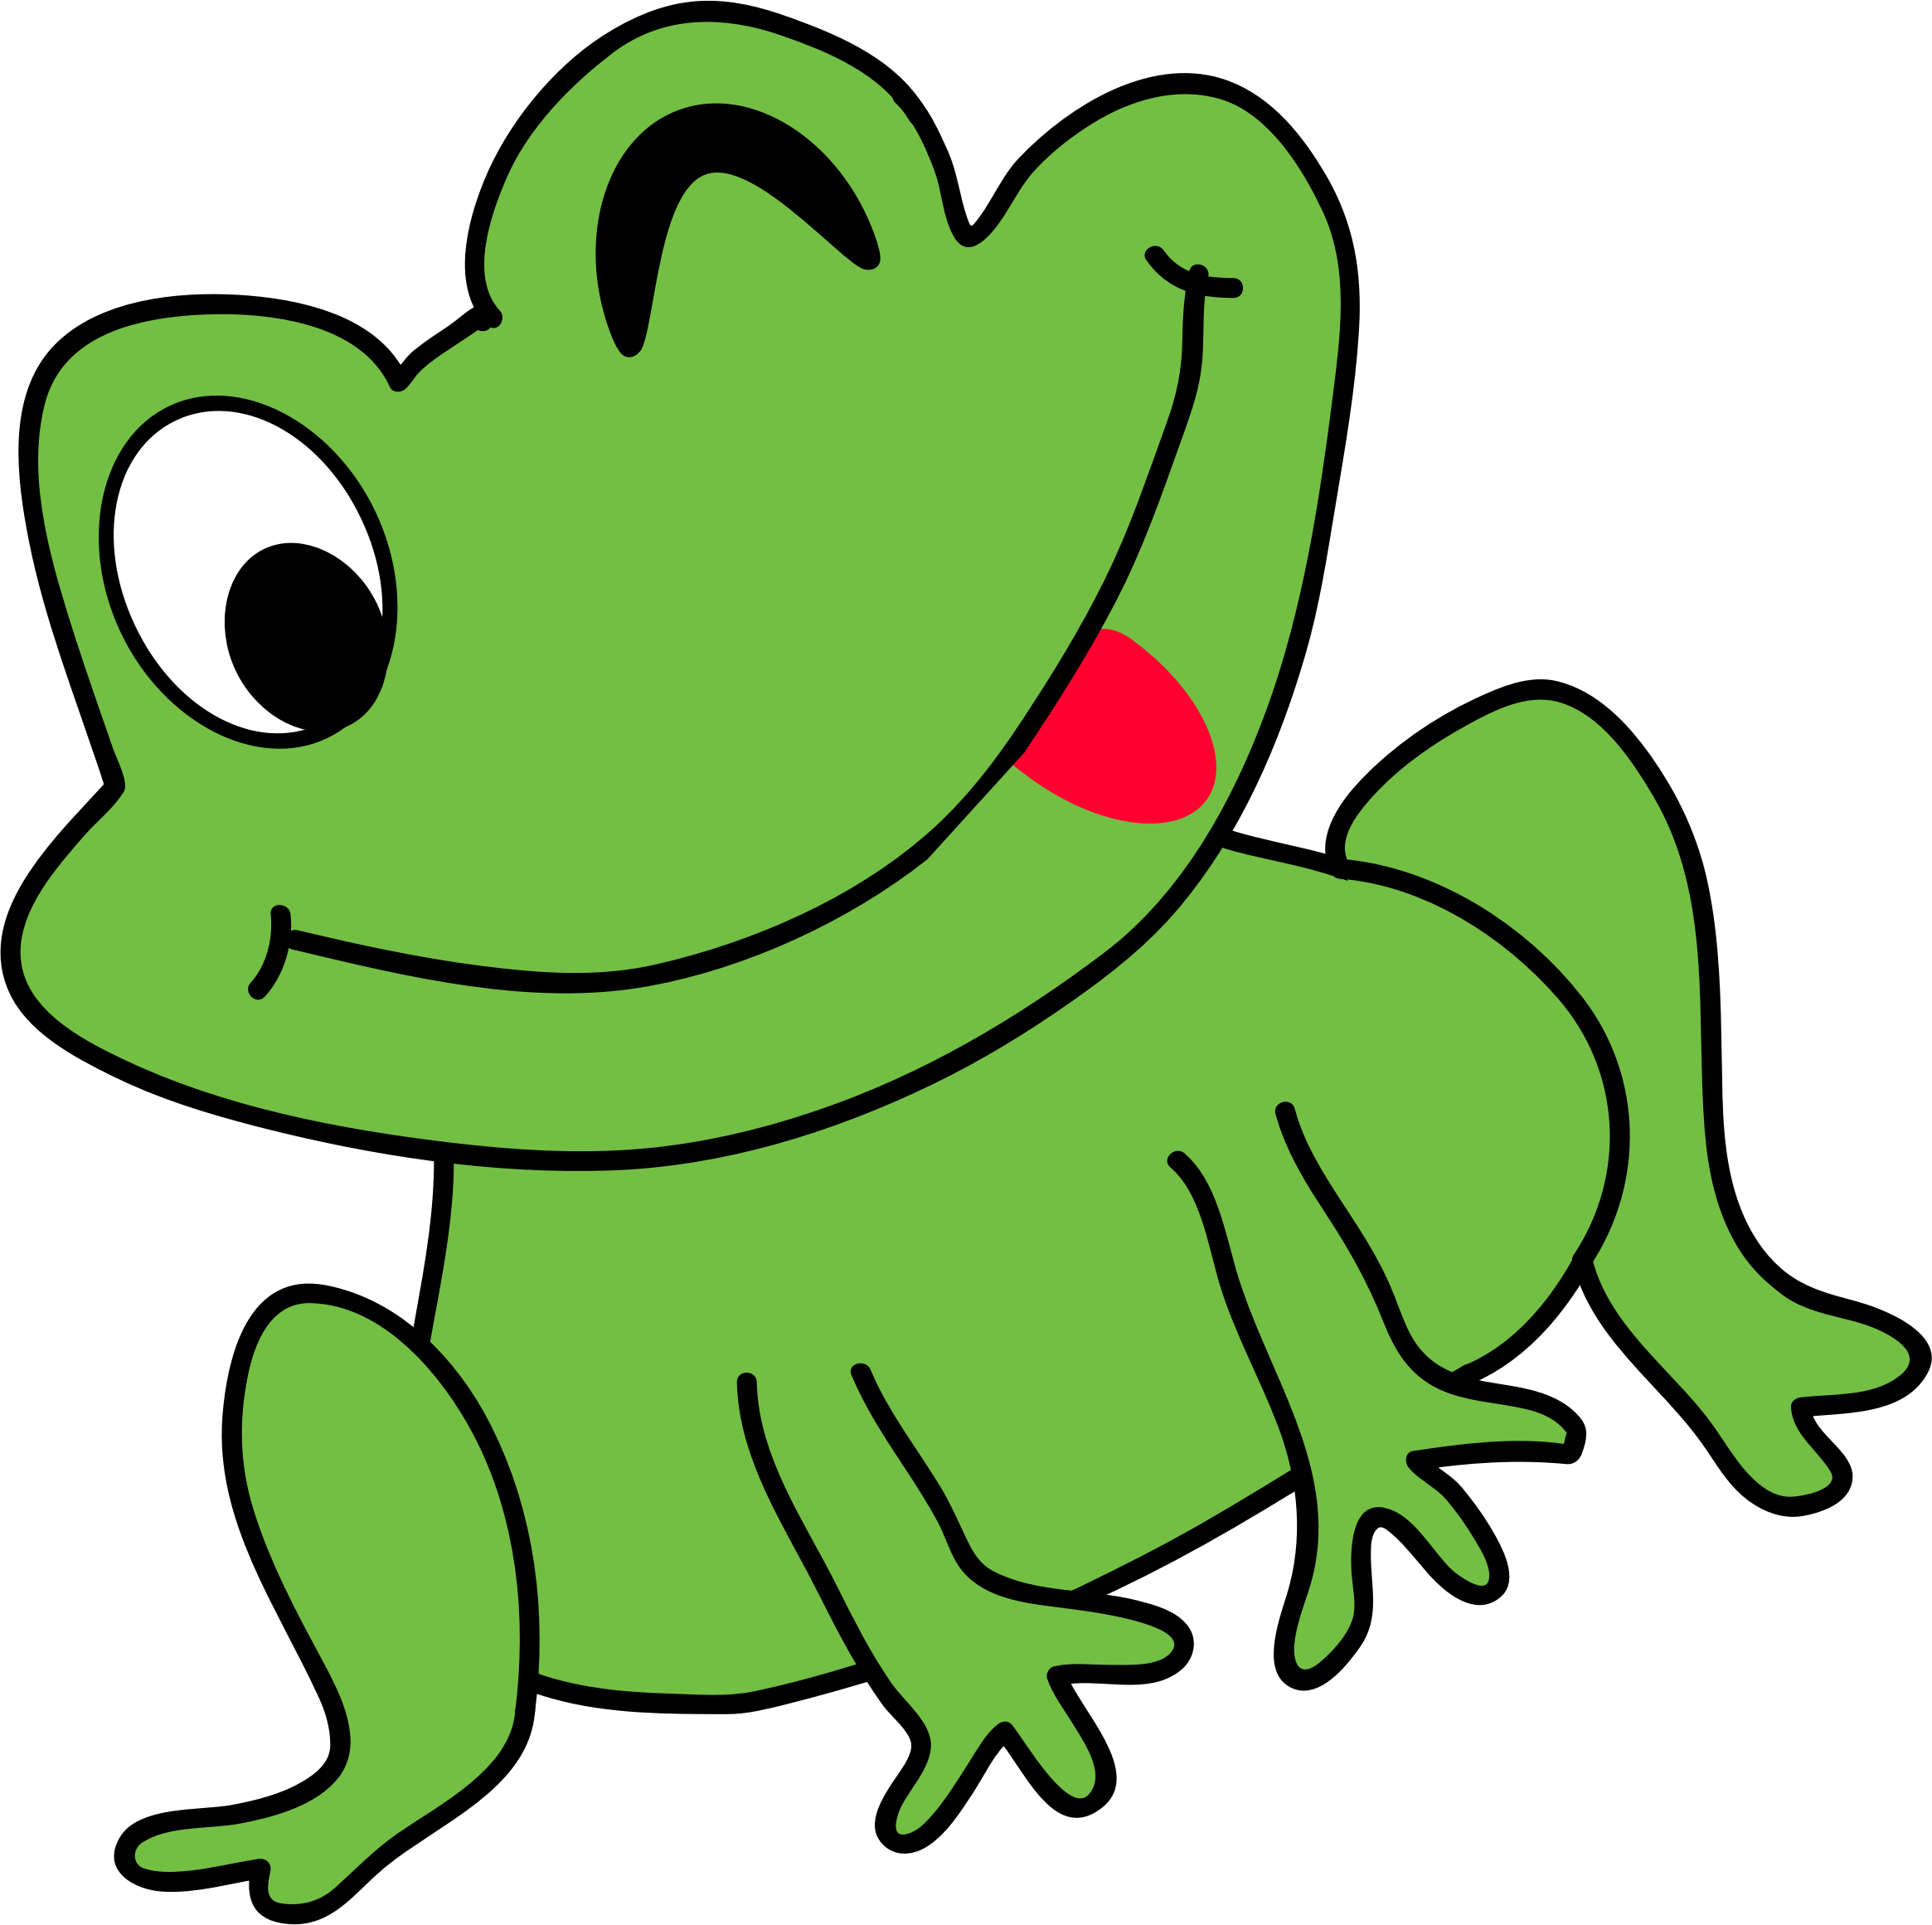 Funny tree clipart picture black and white Clipart - funny frog picture black and white